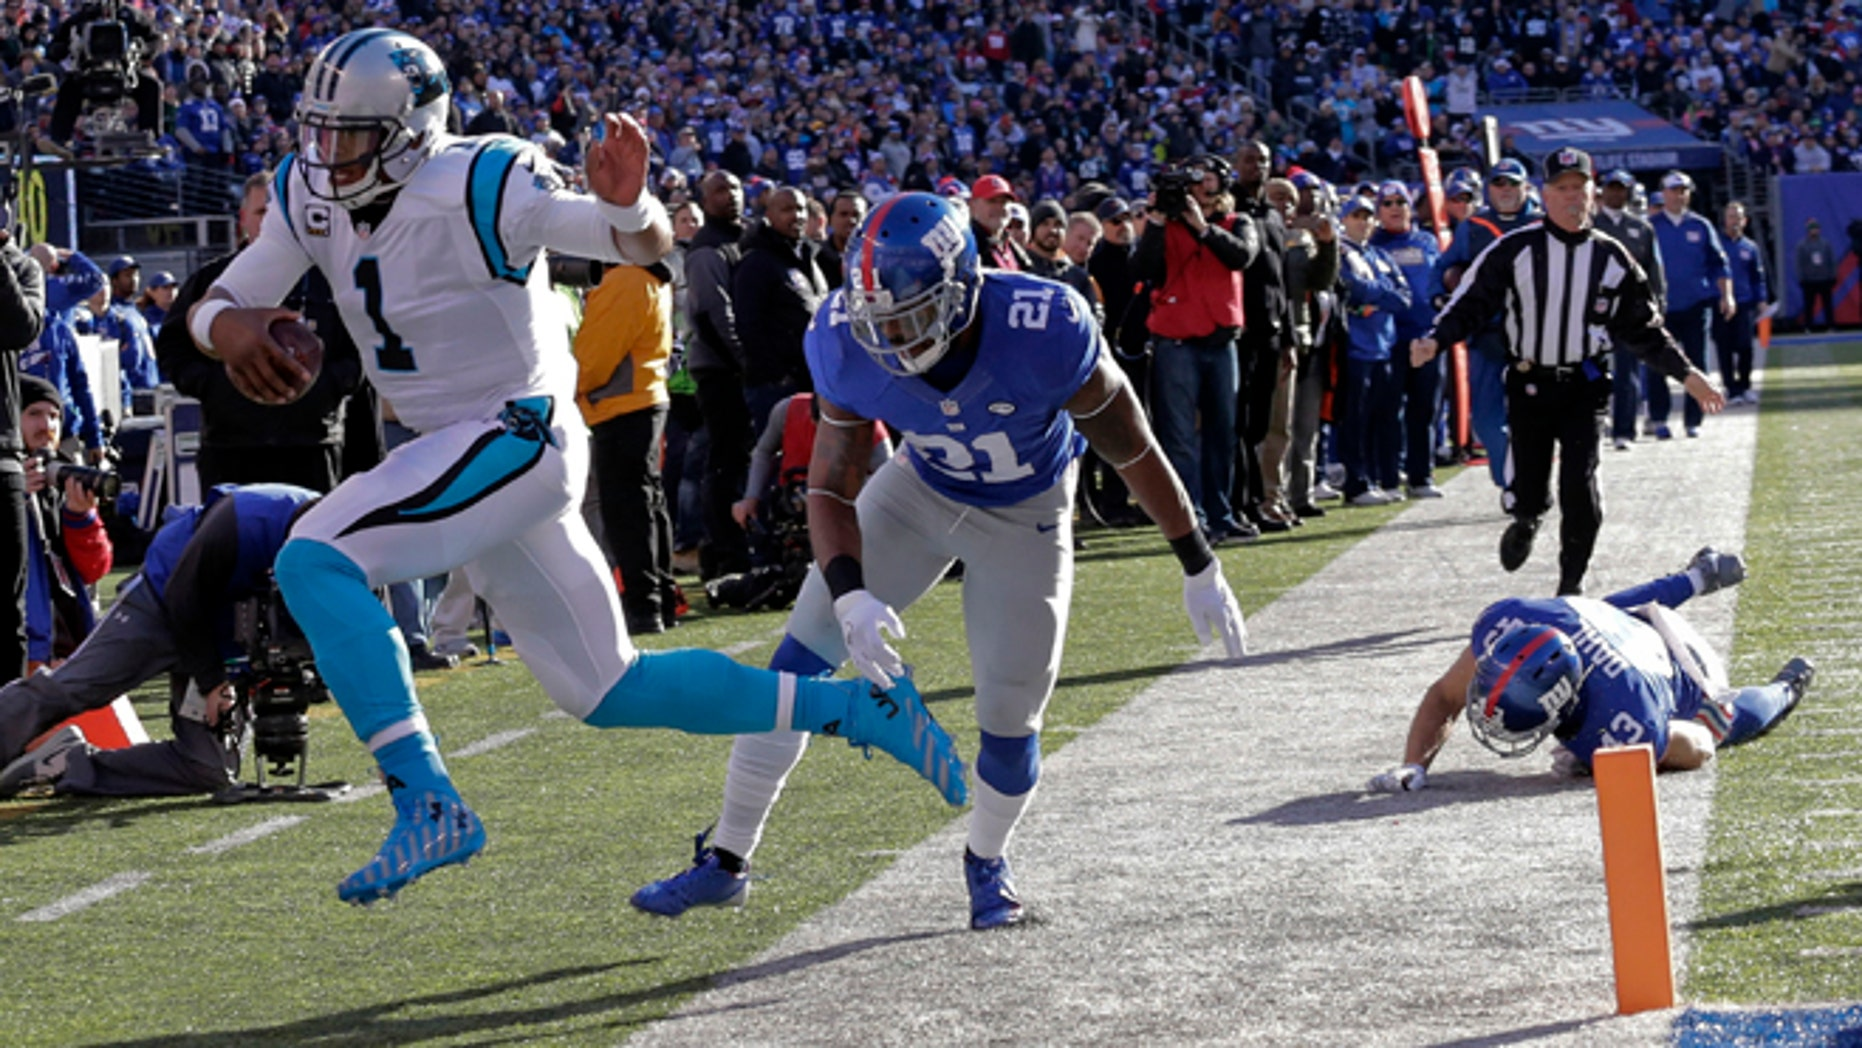 Carolina Panthers quarterback Cam Newton (1) is forced out of bounds by New York Giants' Landon Collins (21) during the first half of an NFL football game Sunday, Dec. 20, 2015, in East Rutherford, N.J. (AP Photo/Julie Jacobson)